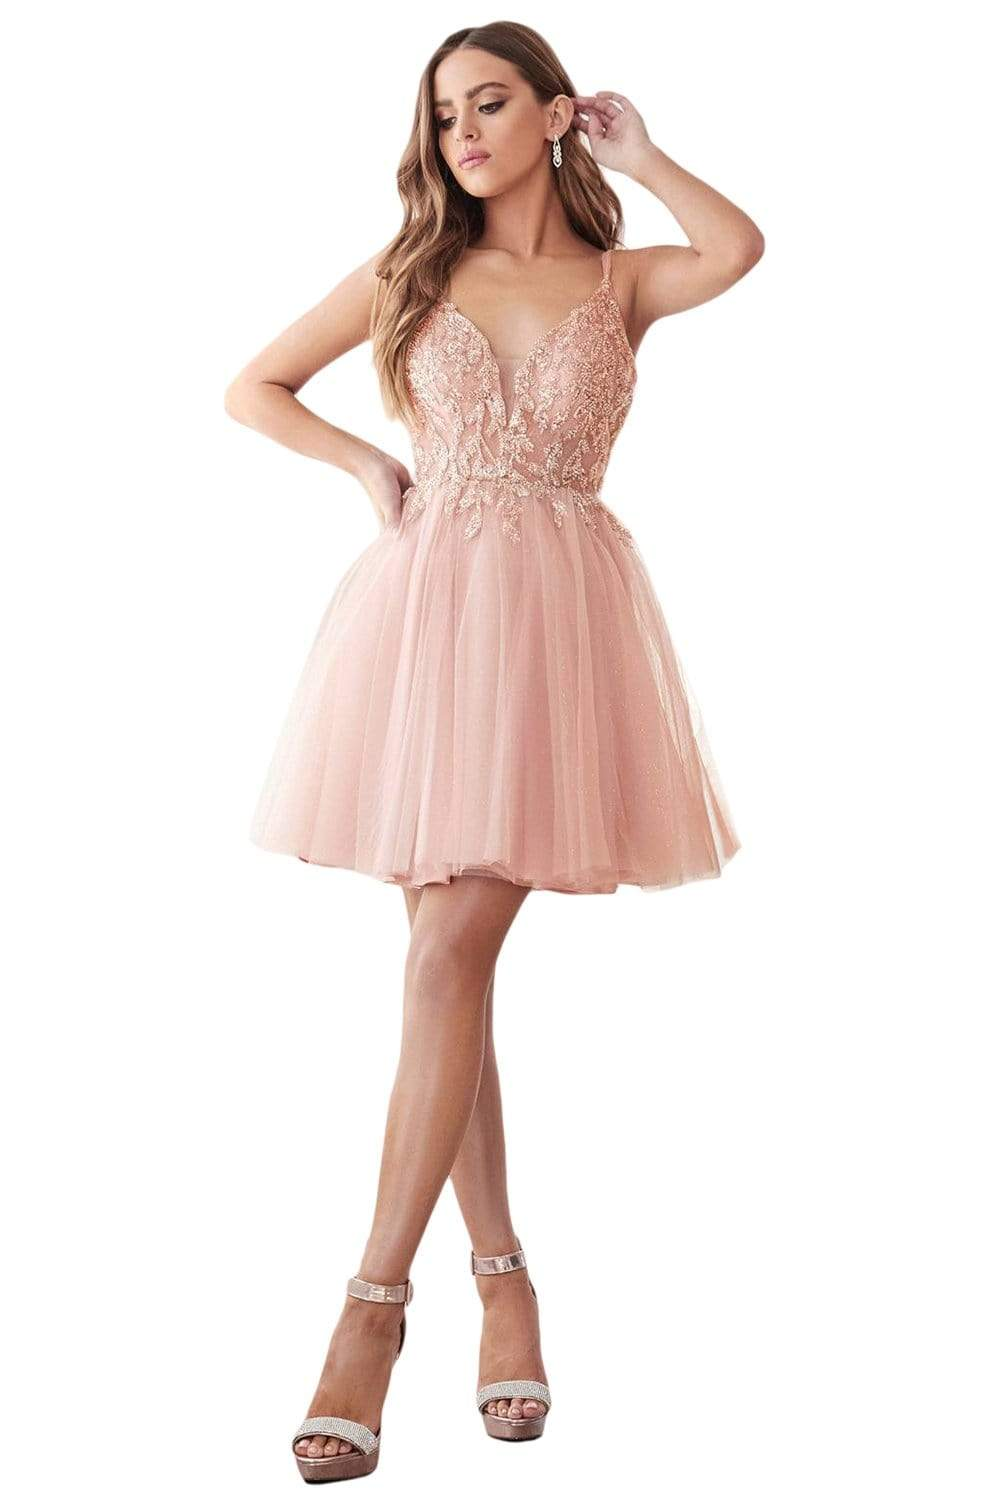 Cinderella Divine - CD0155 Short Beaded Applique Plunging Bodice Dress In Pink